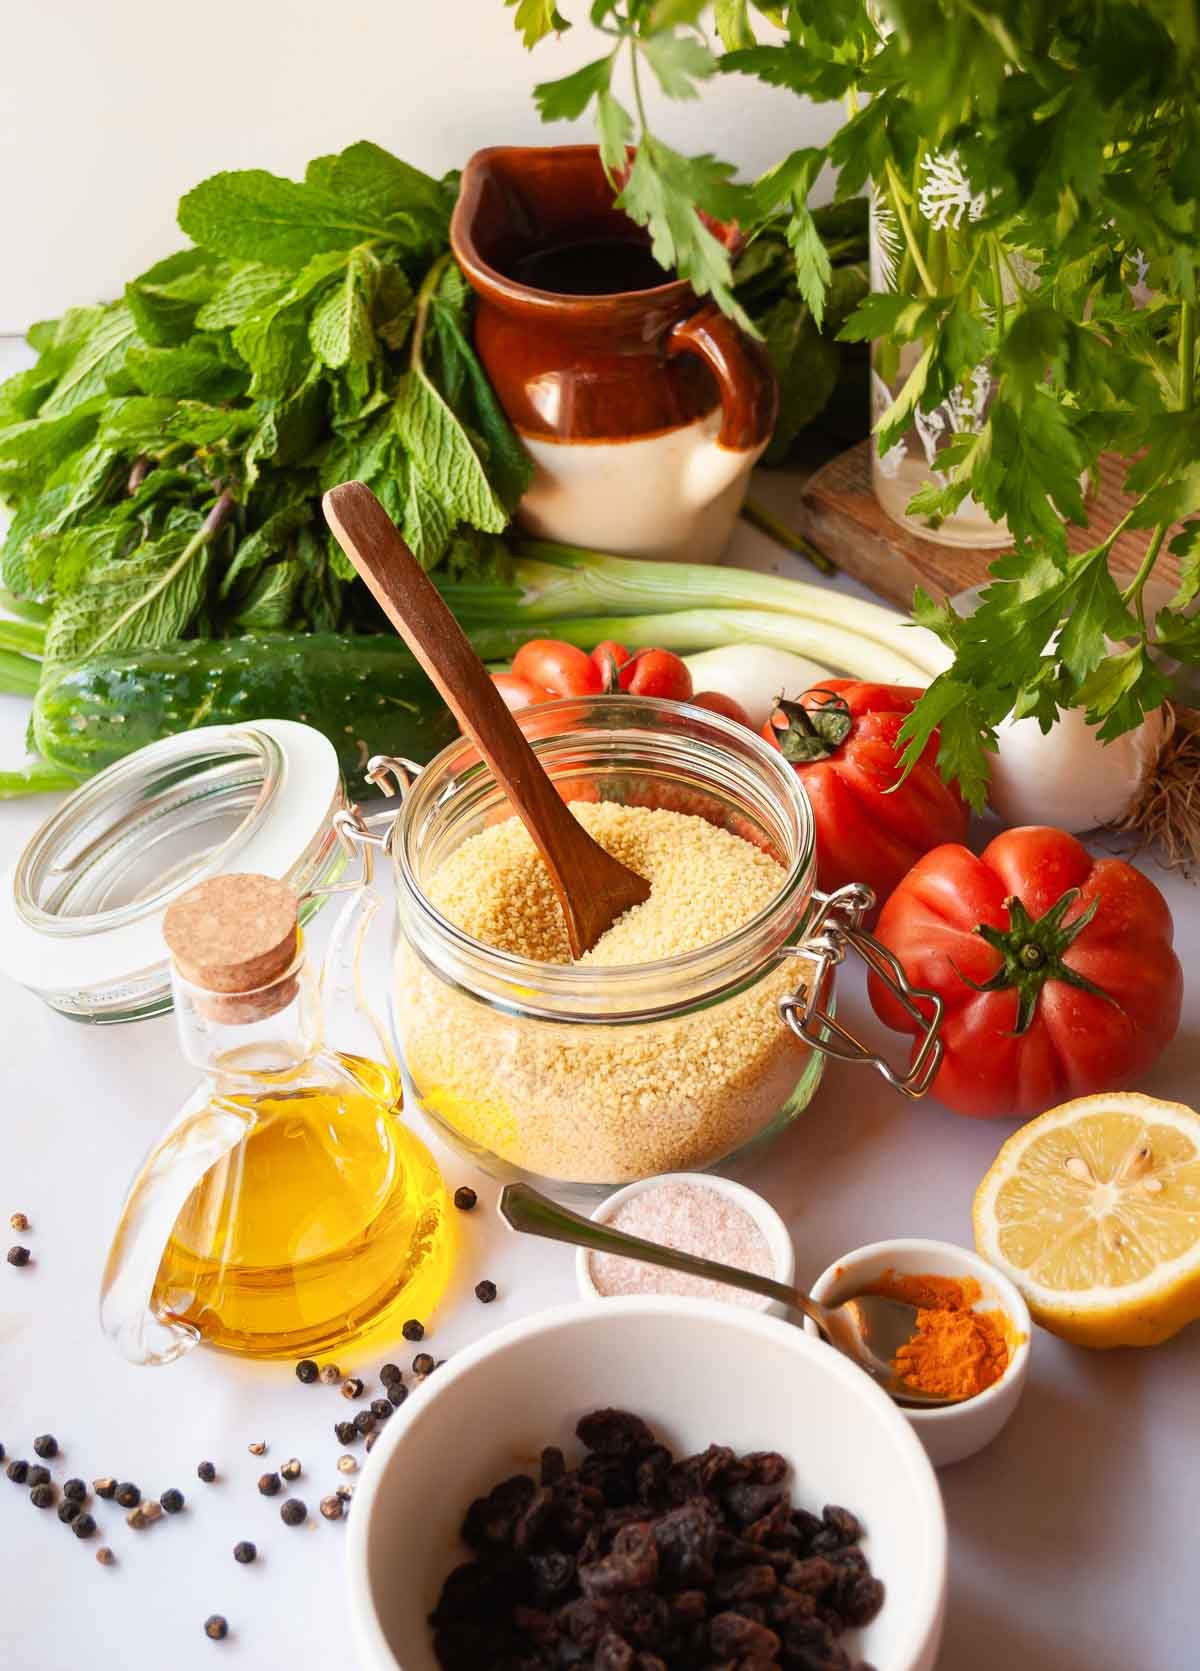 Ingredients to make couscous tabbouleh salad.